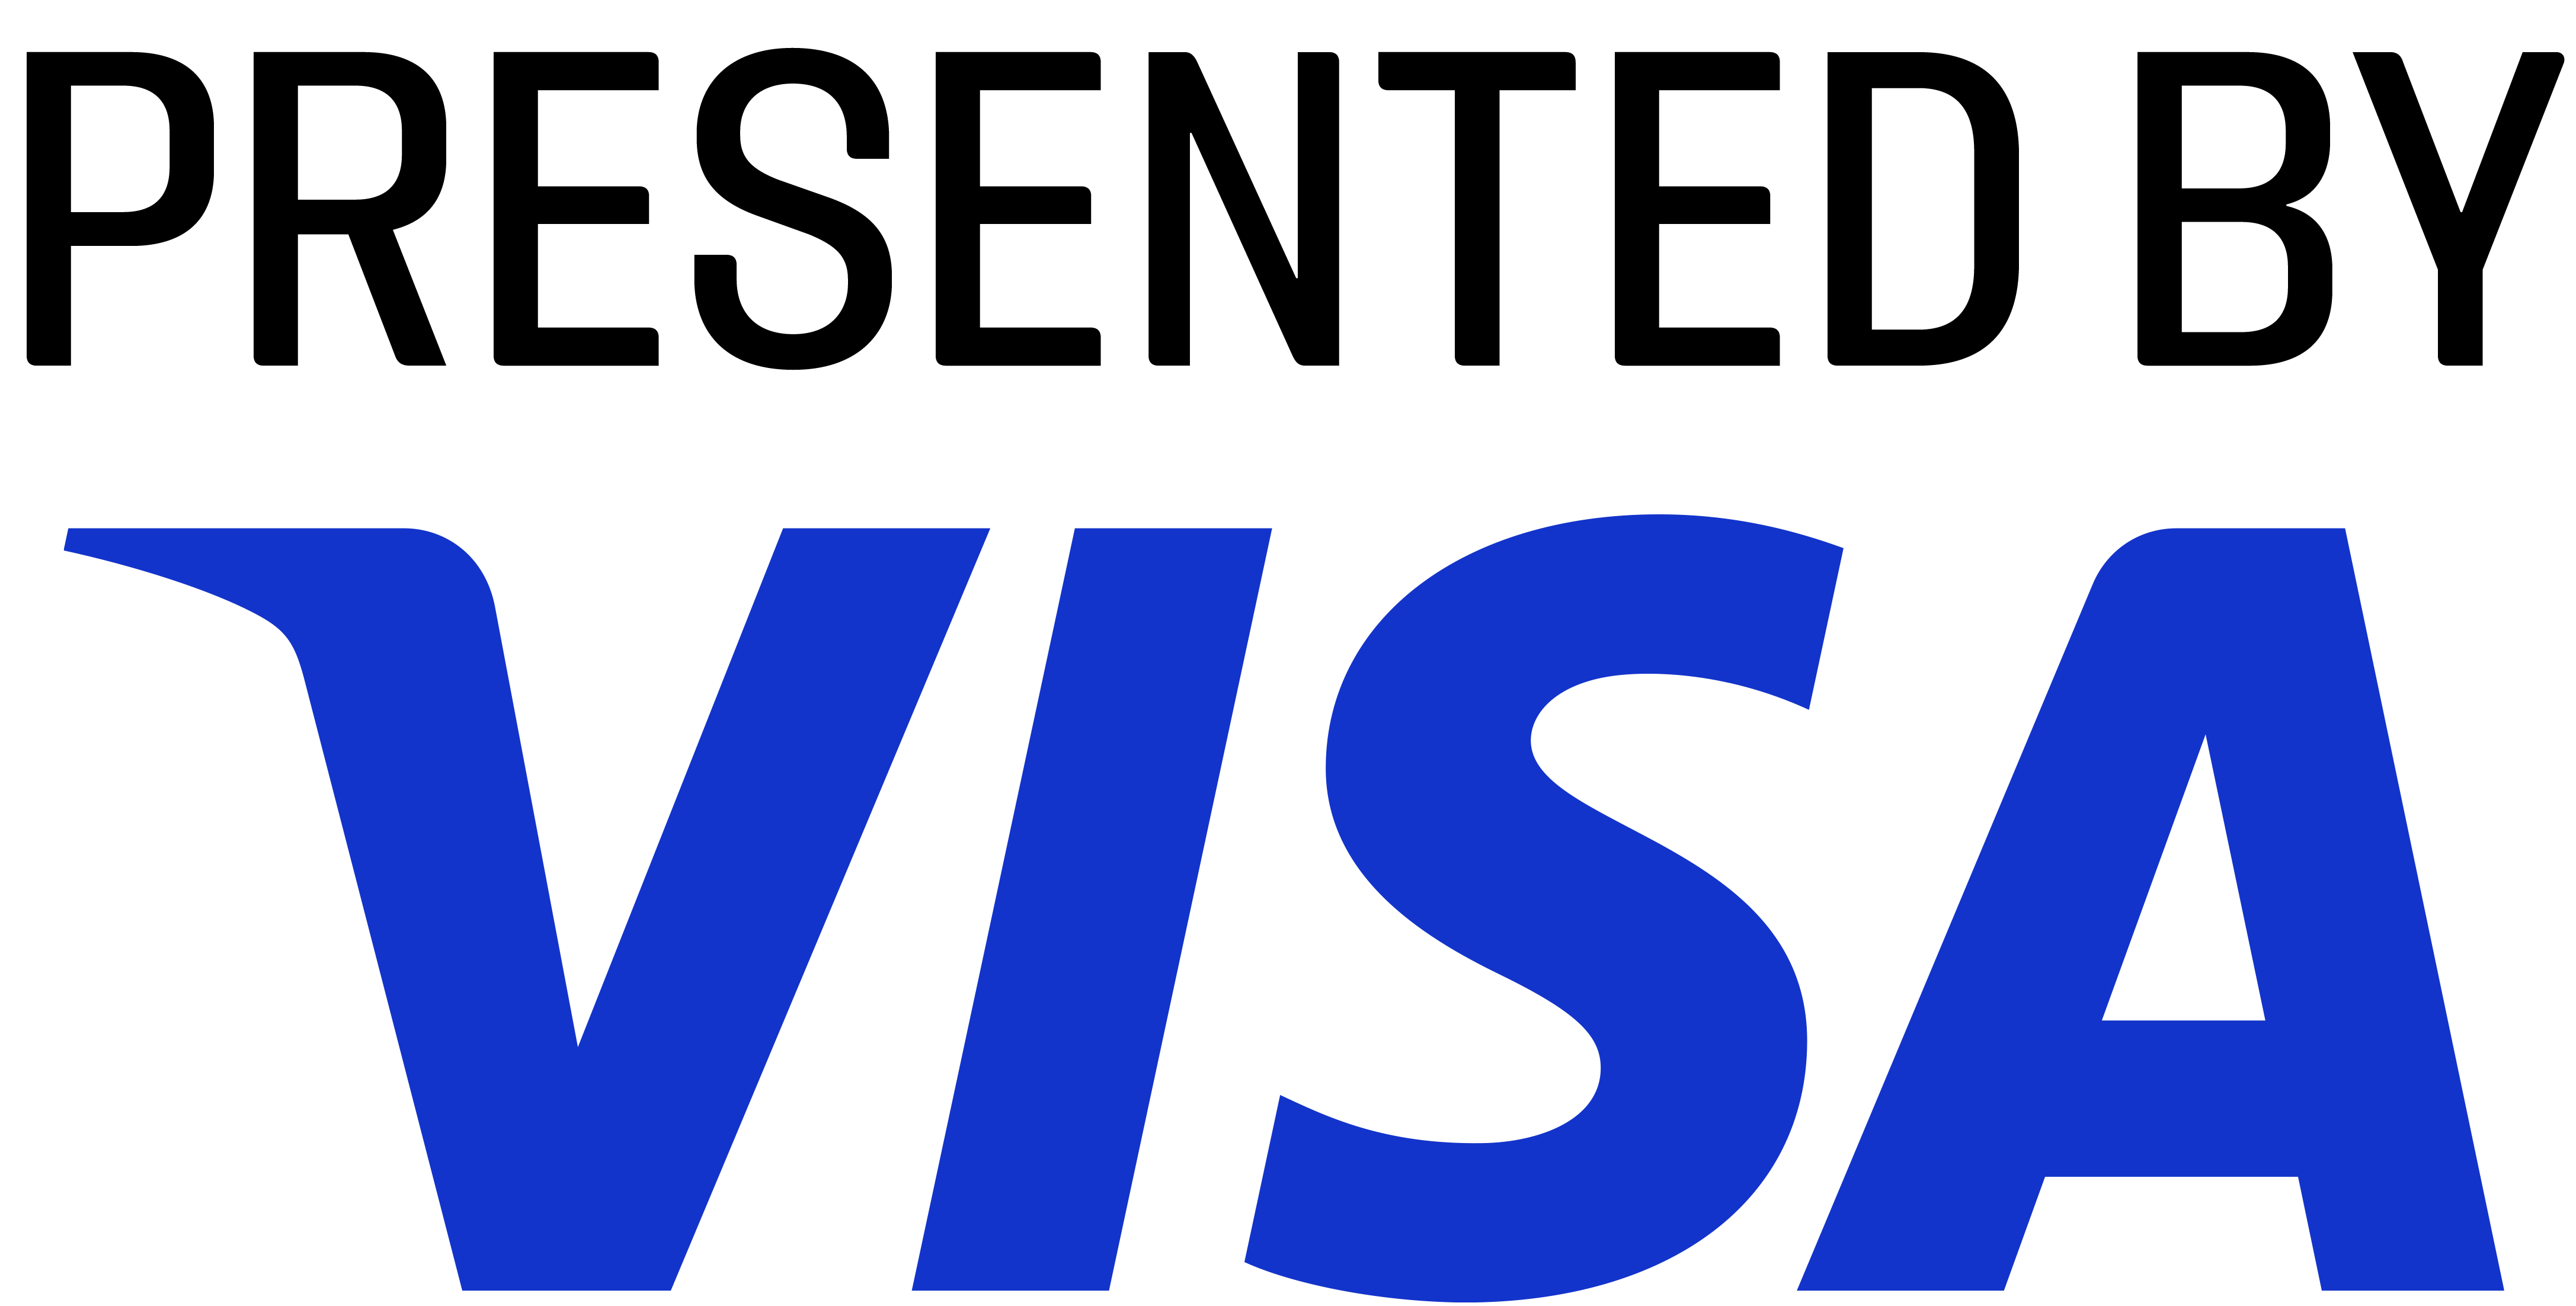 Presented By Visa